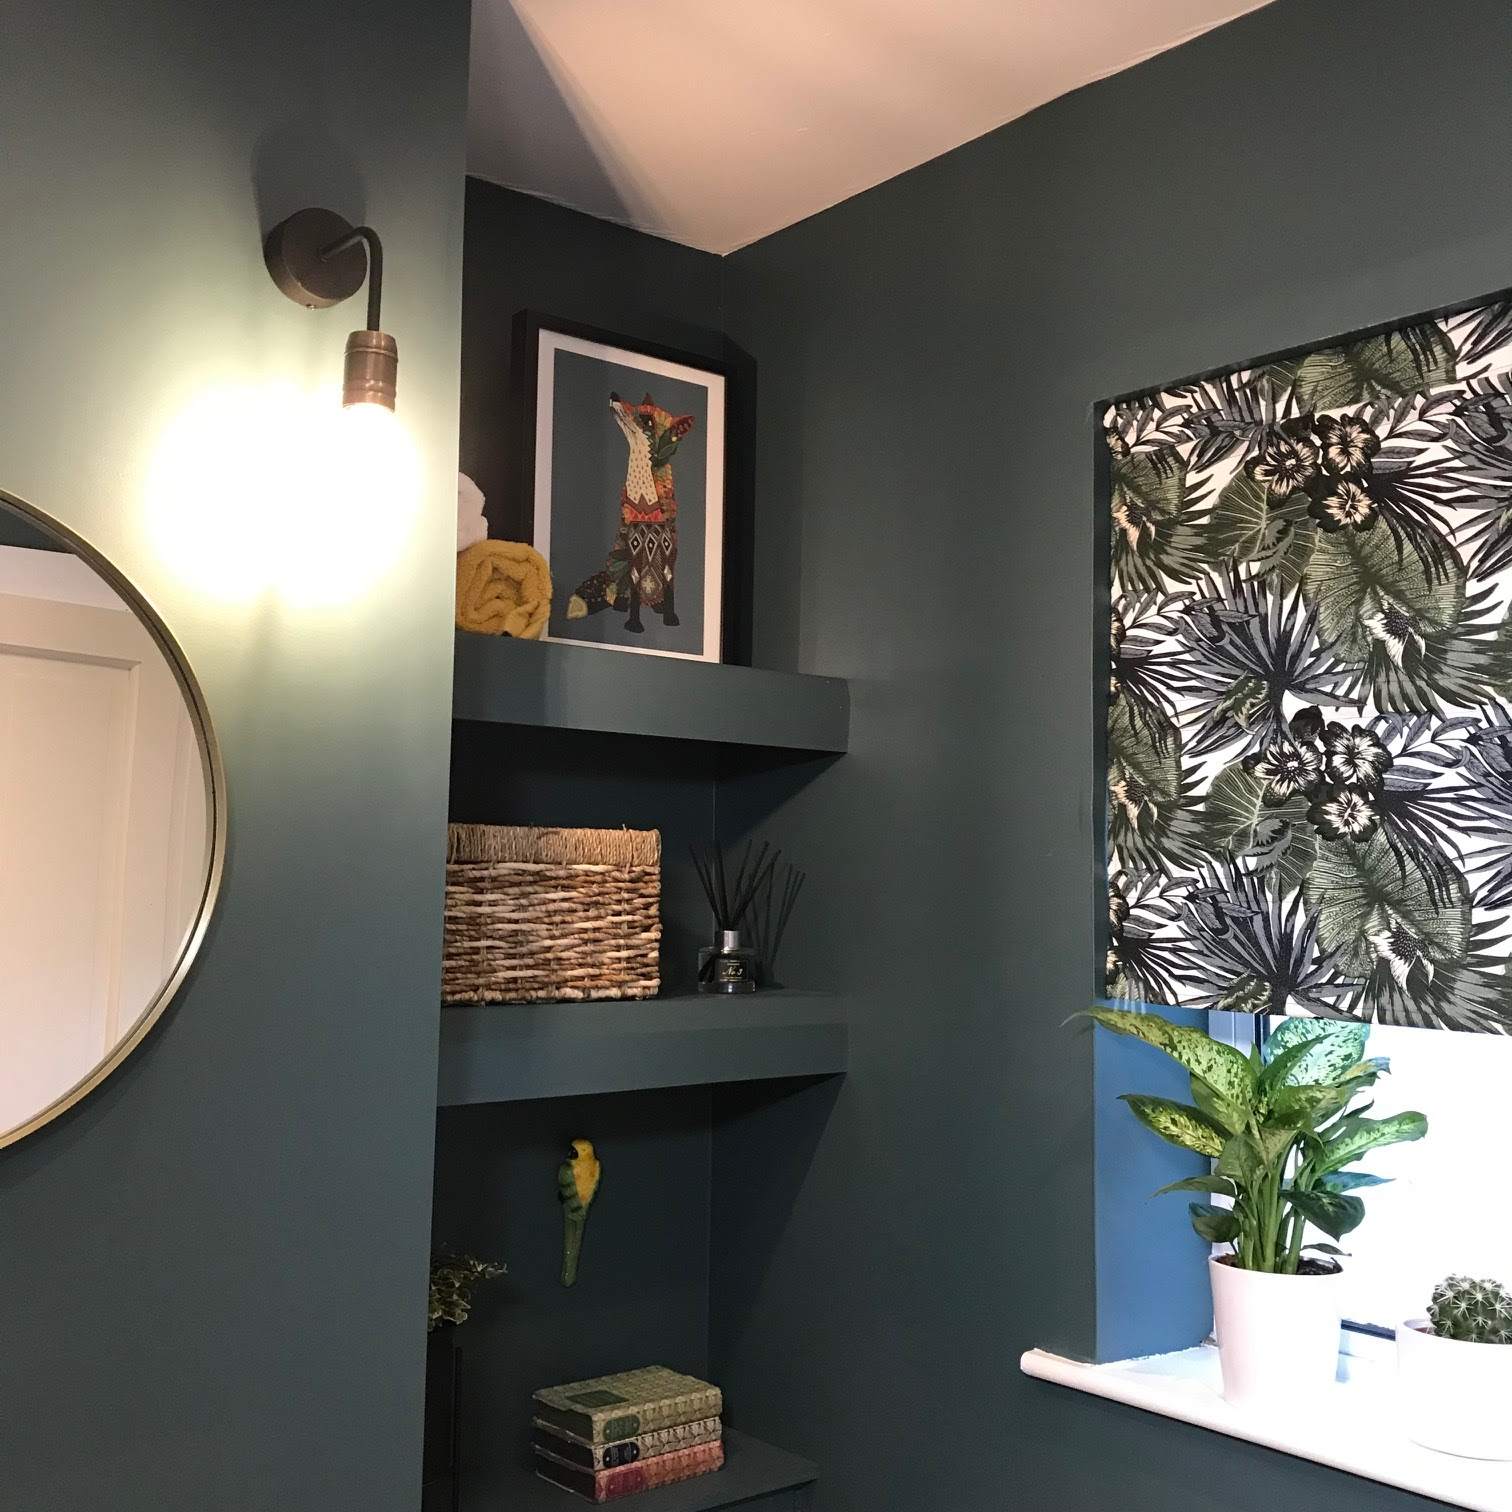 Inexpensive shelving solution built into alcoves